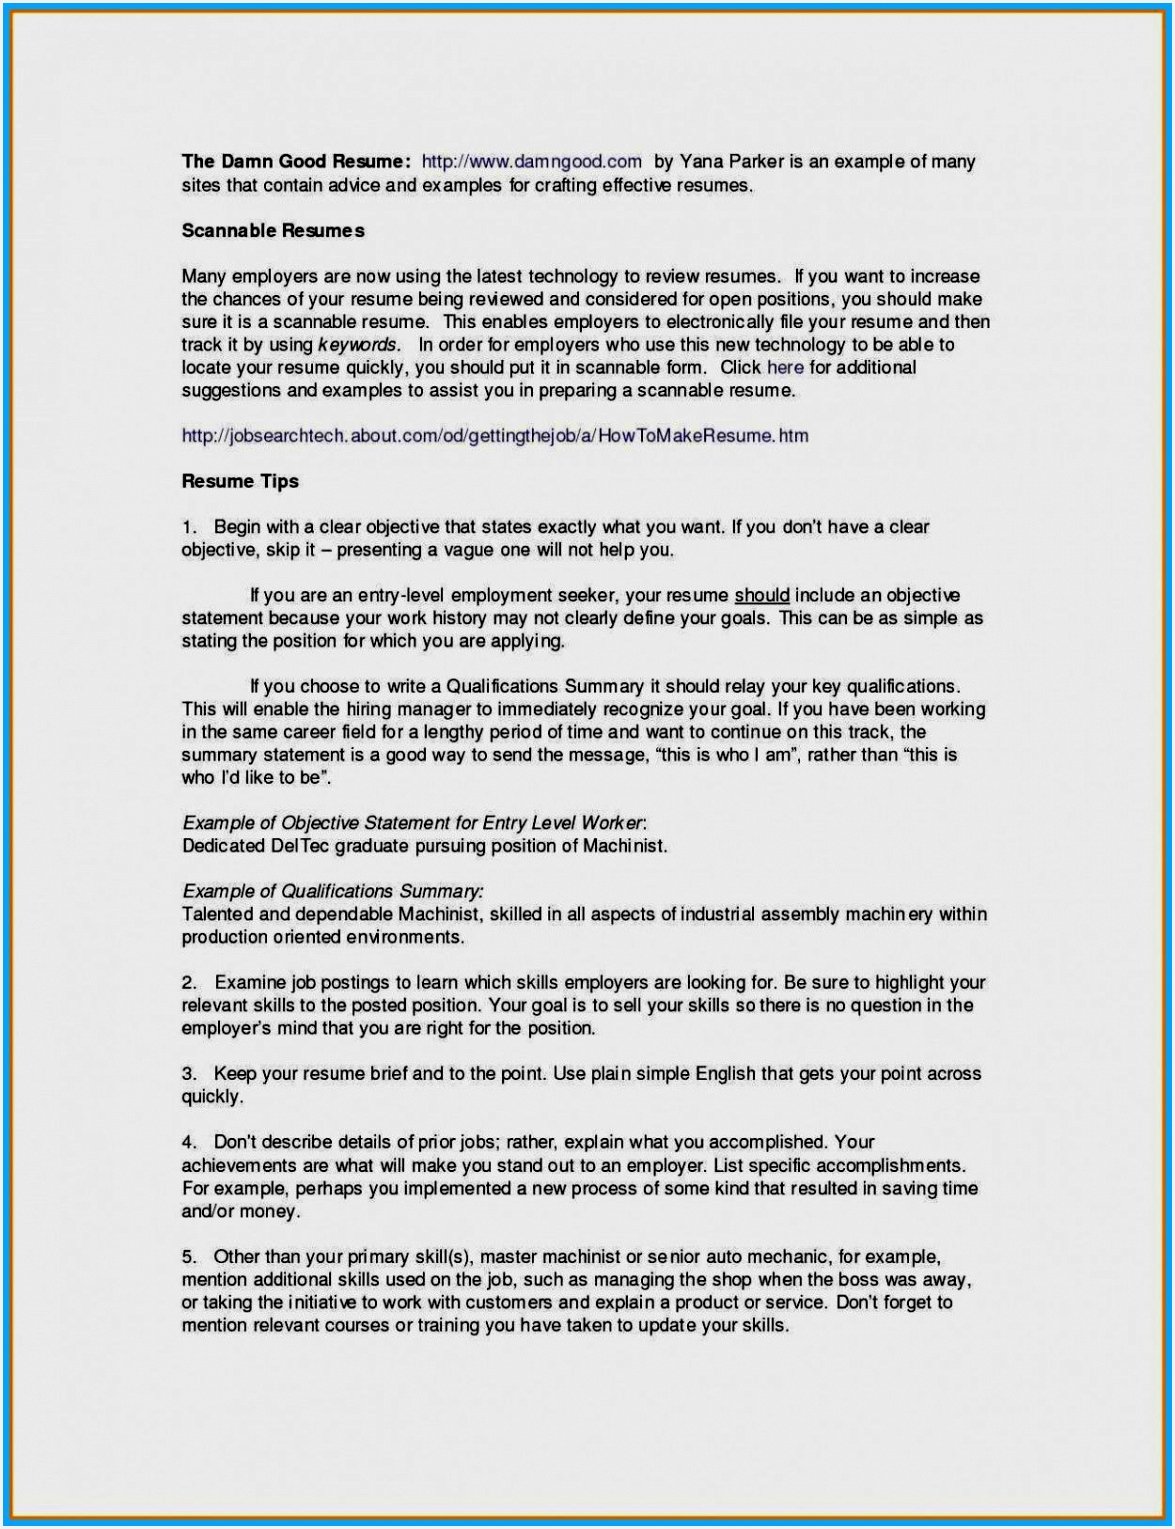 Financial Planning assistant Sample Resume Gegyb Awesome 66 Cool Self Employed Resume Examples Pdf15291175